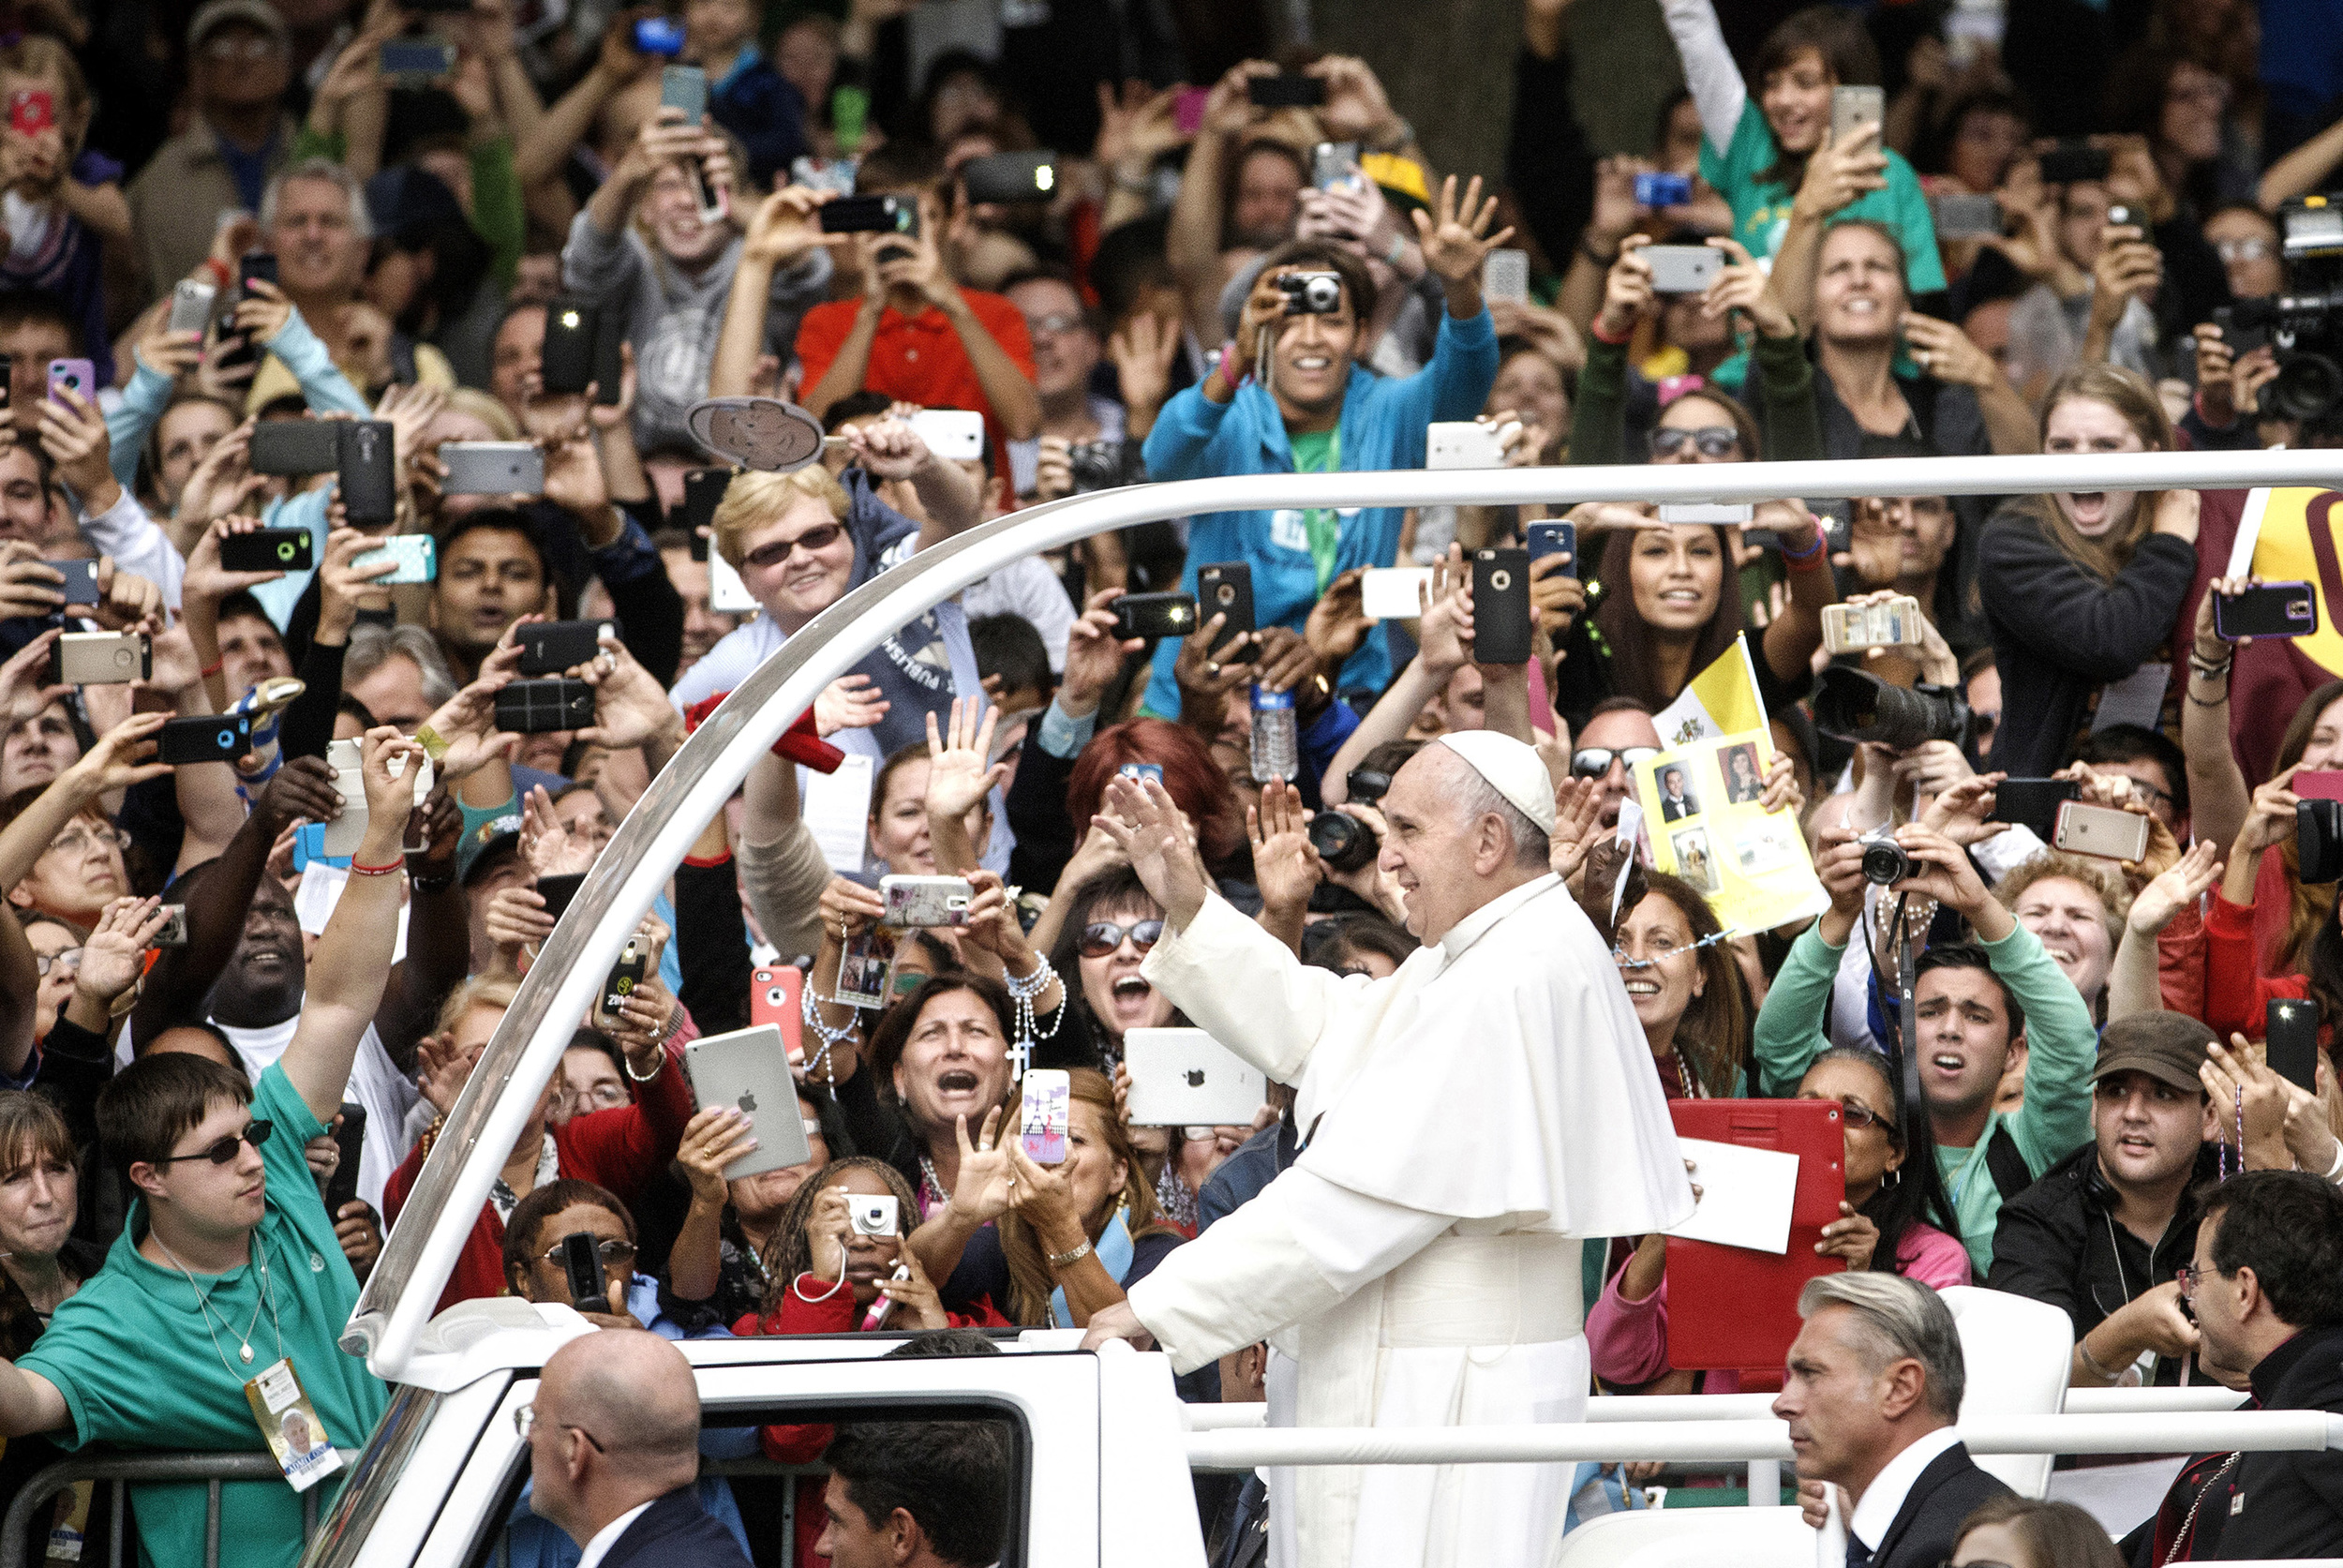 Pope Francis In Philadelphia - Pope Francis rides in the Popemobile down Benjamin Franklin Parkway at the start of Mass.  Pope Francis celebrates the closing Mass for the World Meeting of Families 2015 held outside the Philadelphia Art Museum.  Sunday September 27, 2015. Philadelphia, PA, USA